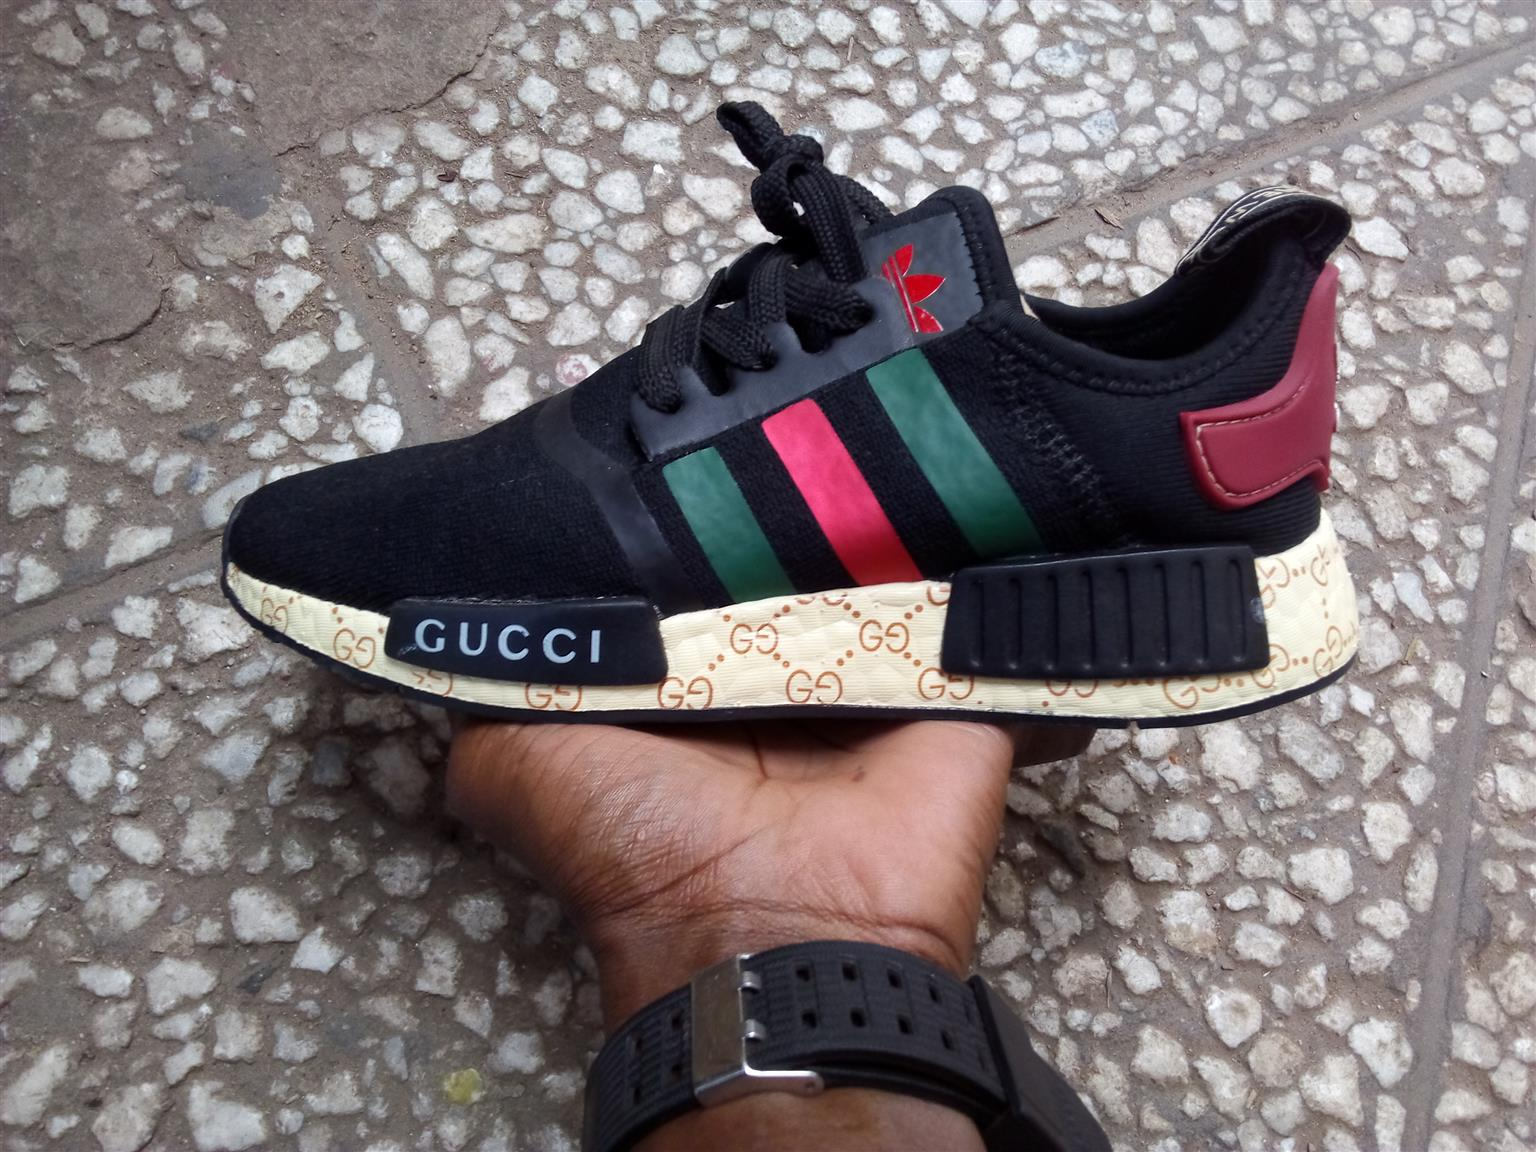 online store 8fba4 376cd Adidas NMD Gucci Sneakers | Junk Mail